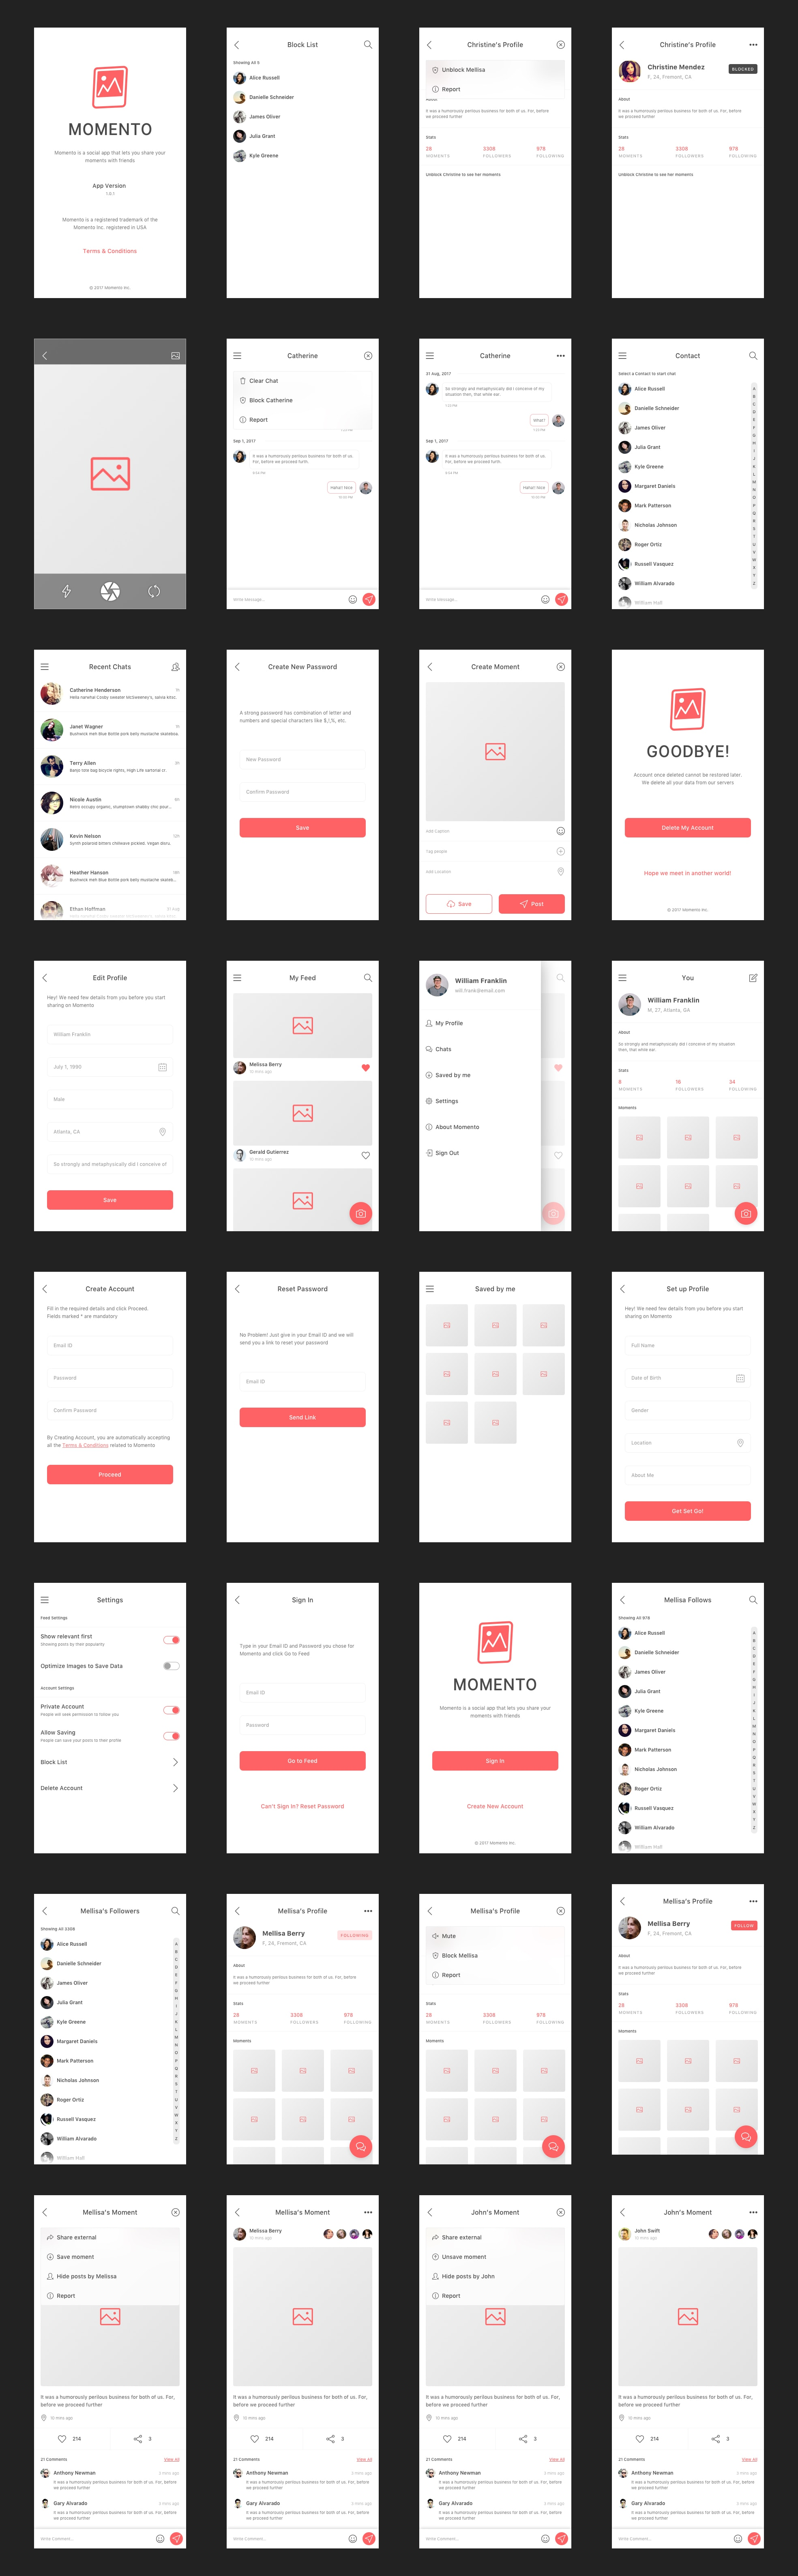 Momento - Free Sketch UI Kit from UIGarage